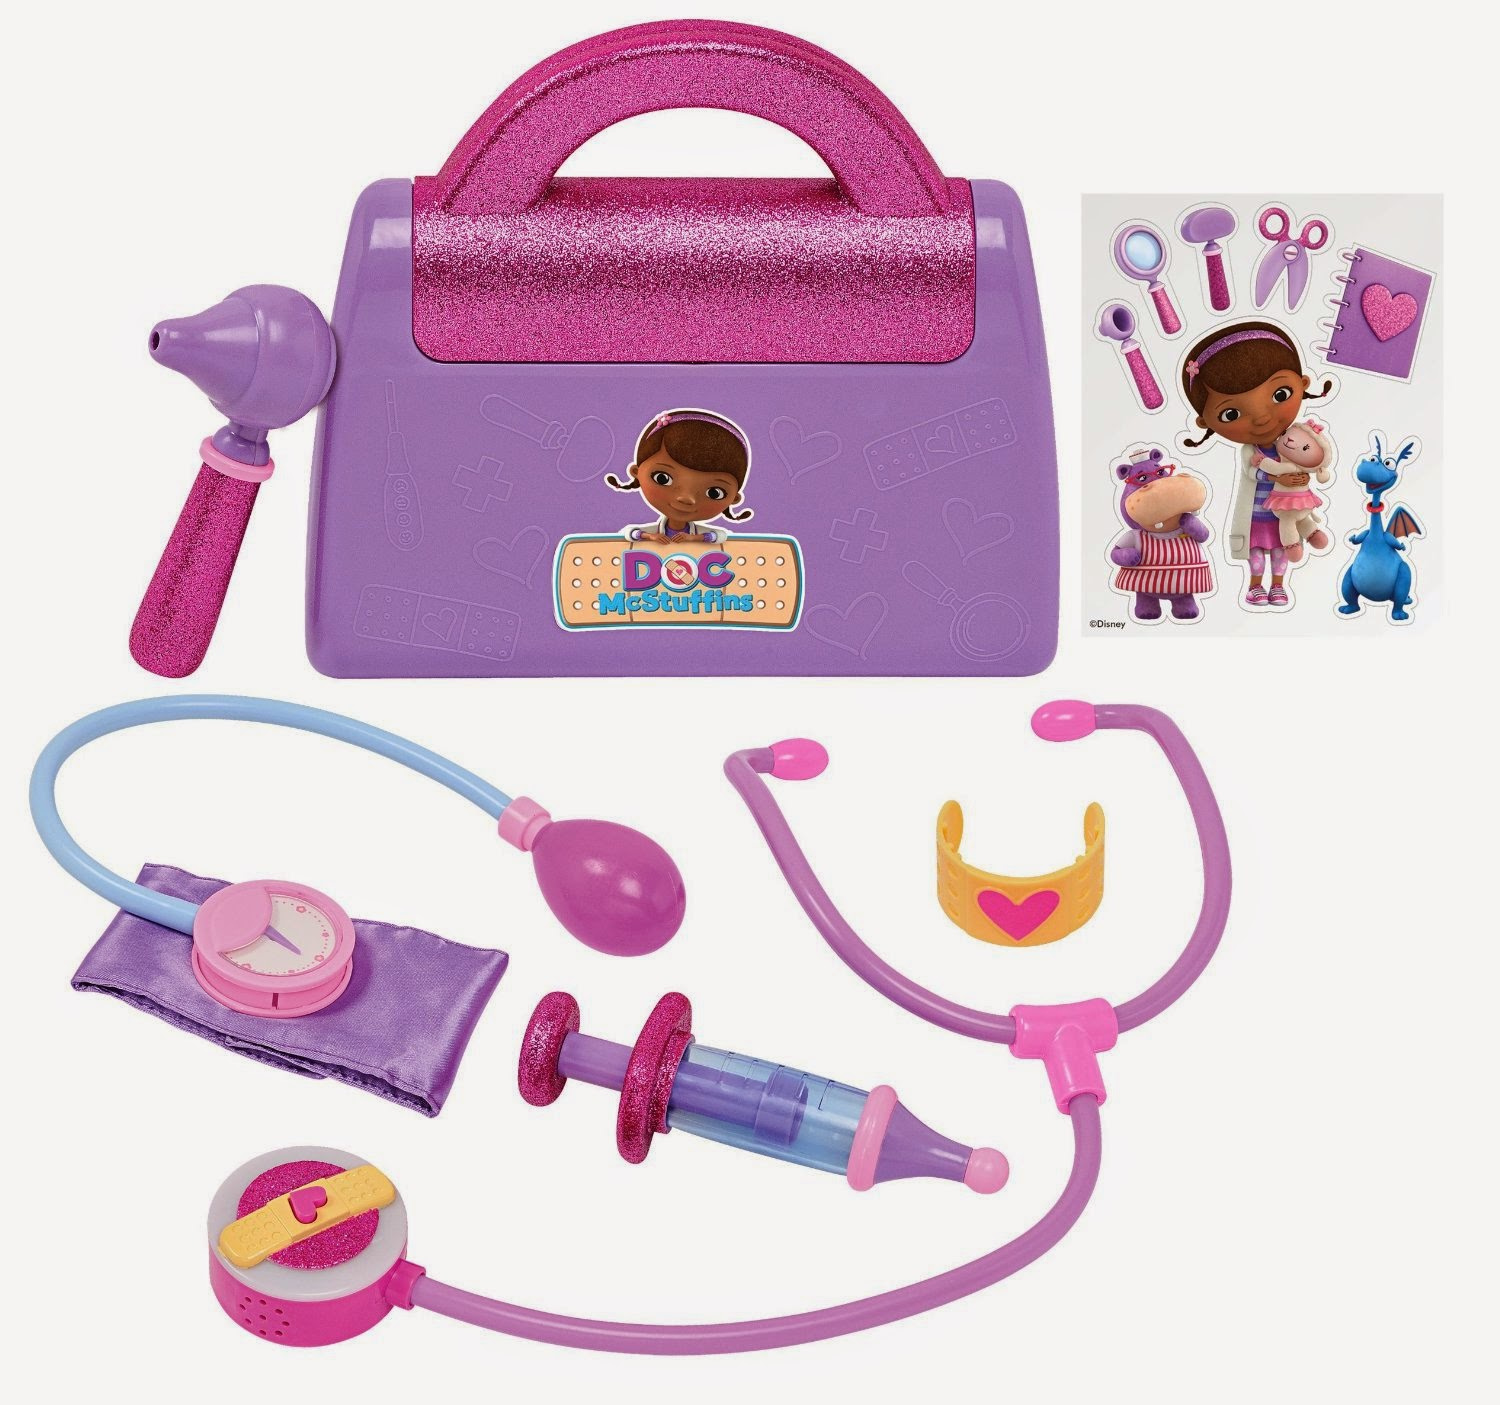 Toddler approved favorite gifts for 2 year olds for Jewelry making kit for 4 year old